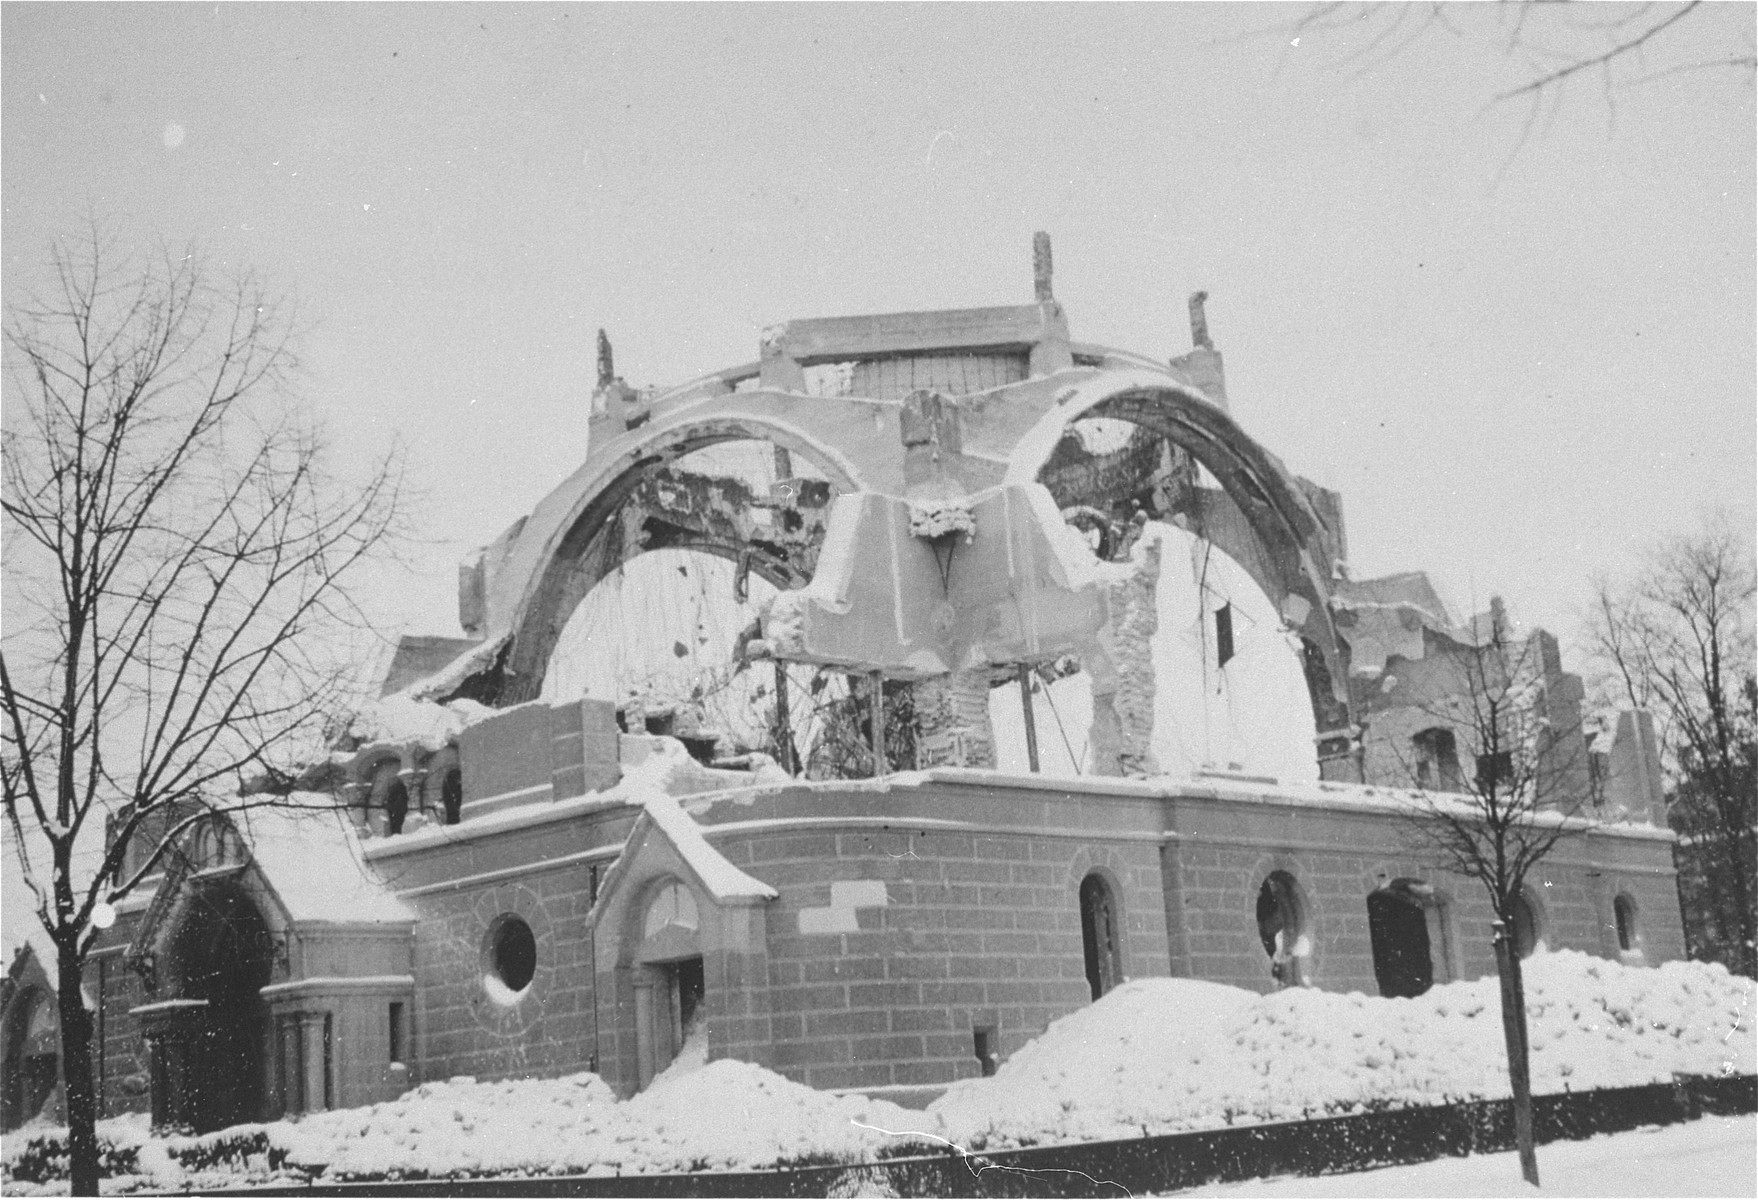 View of a destroyed synagogue in Inowroclaw, Poland.